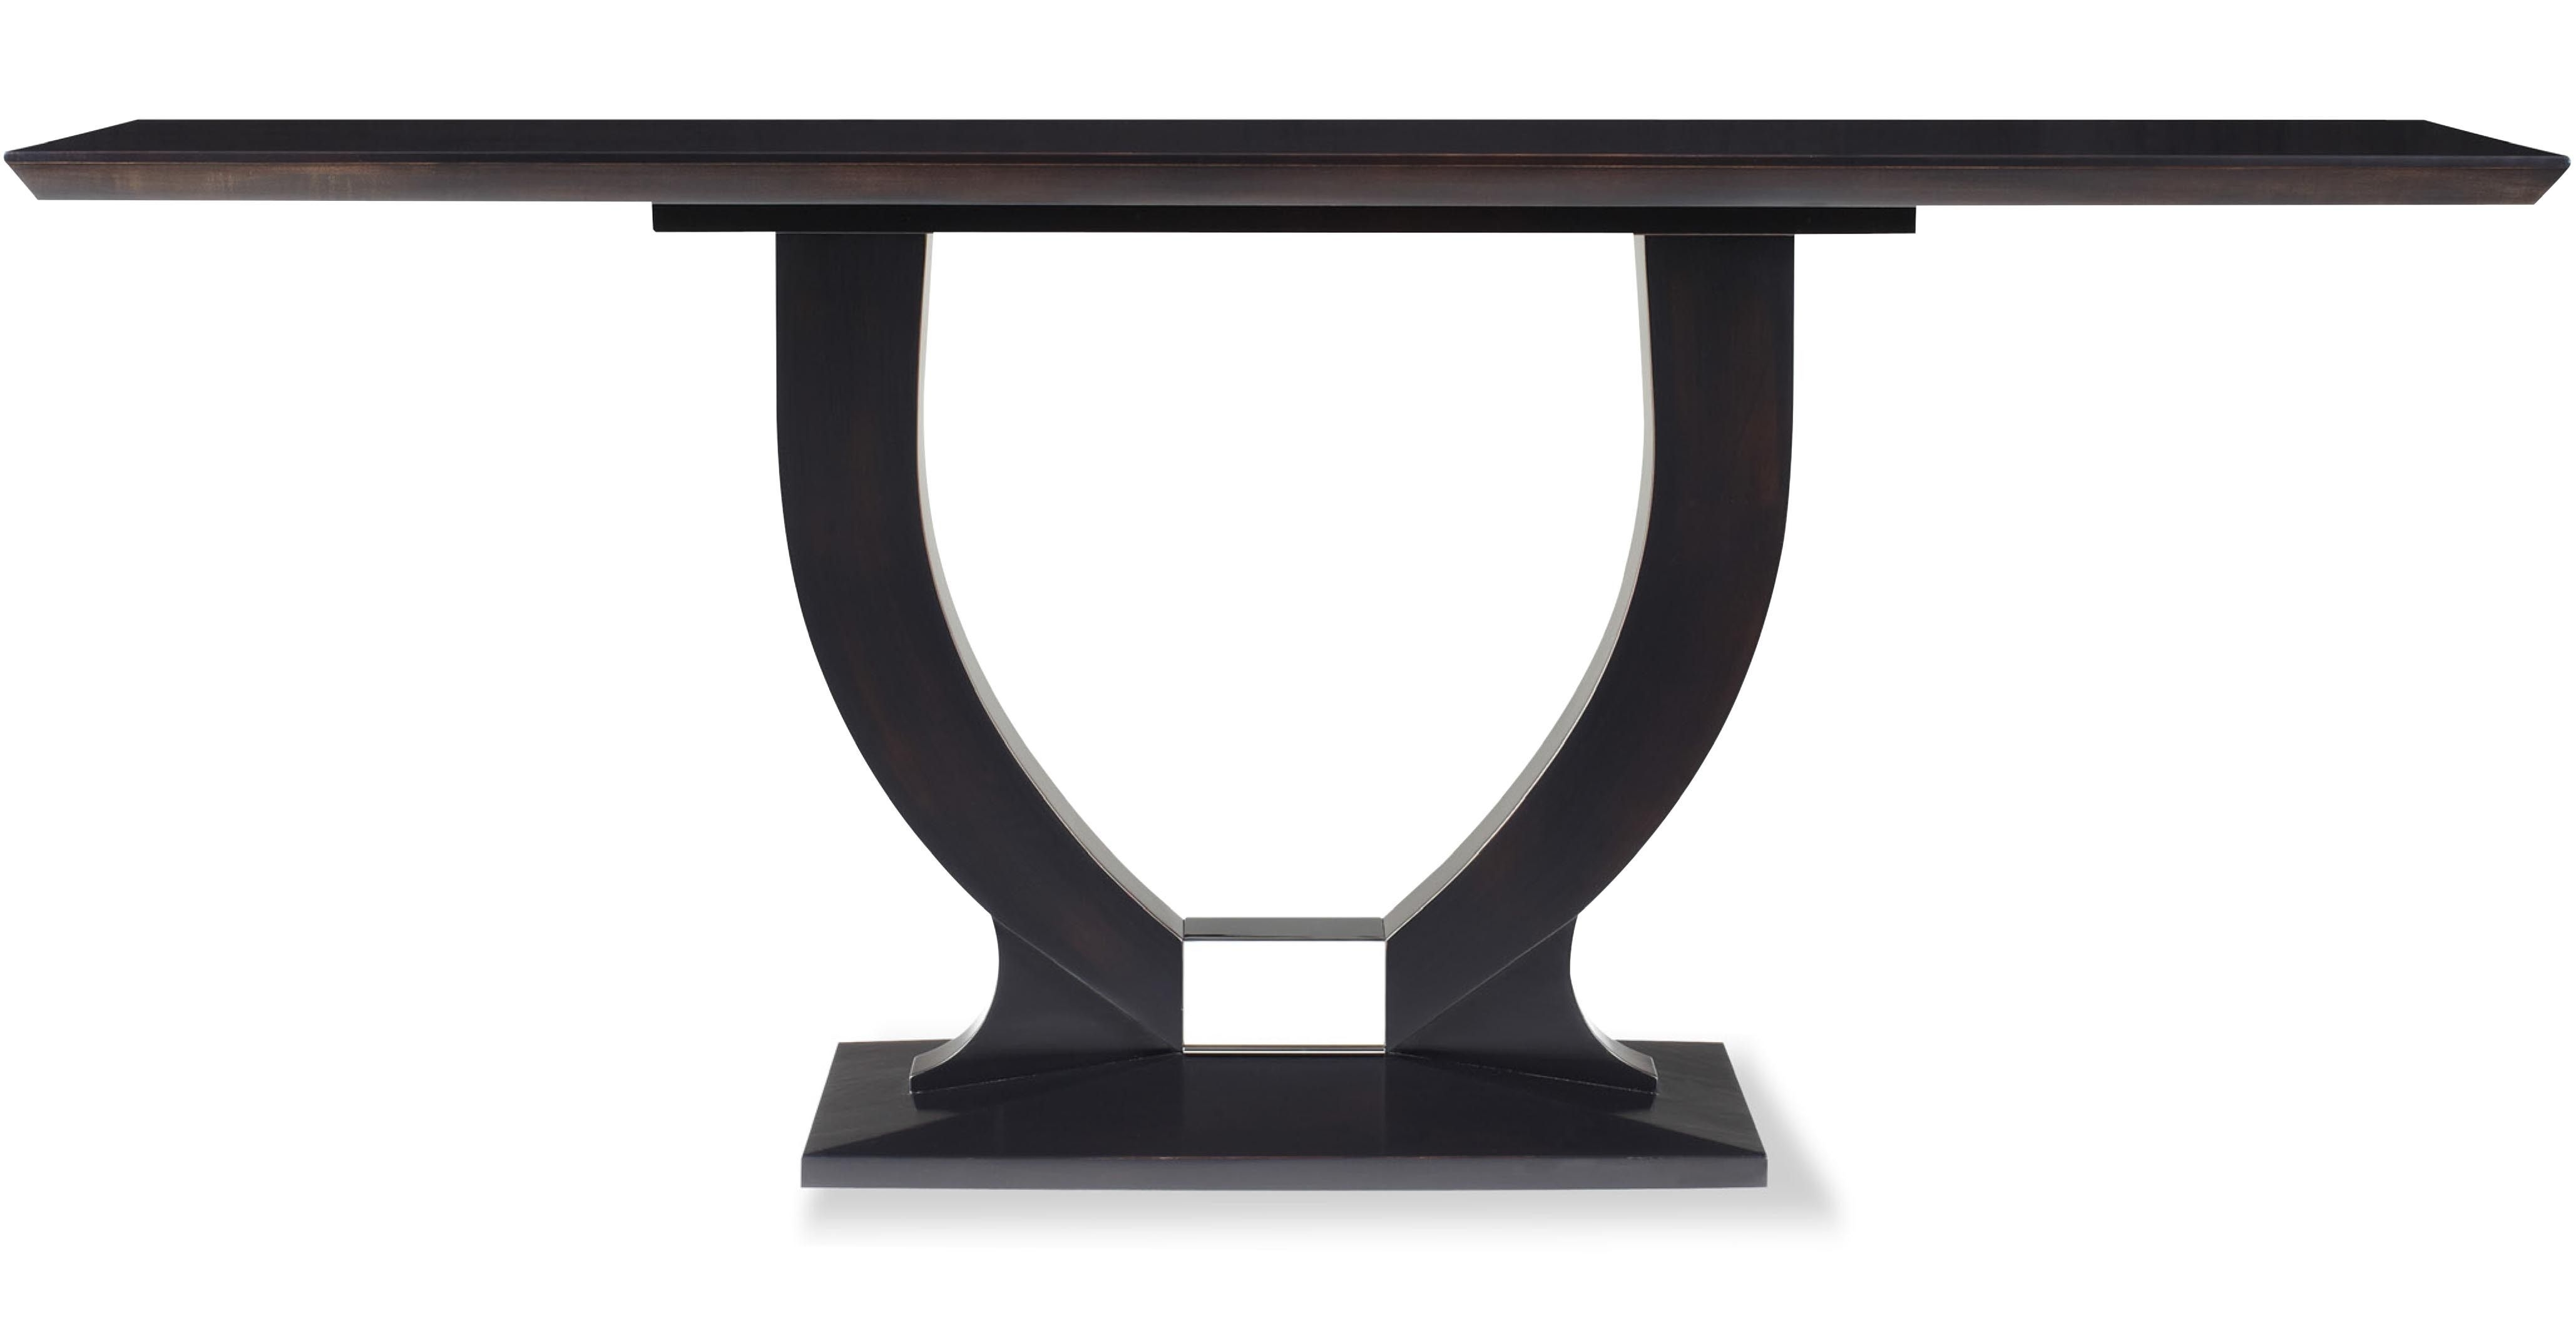 106 3 Console | 181 E 73 Lobby Tables | Pinterest | Consoles, Metal Throughout Stately Acrylic Coffee Tables (View 1 of 30)